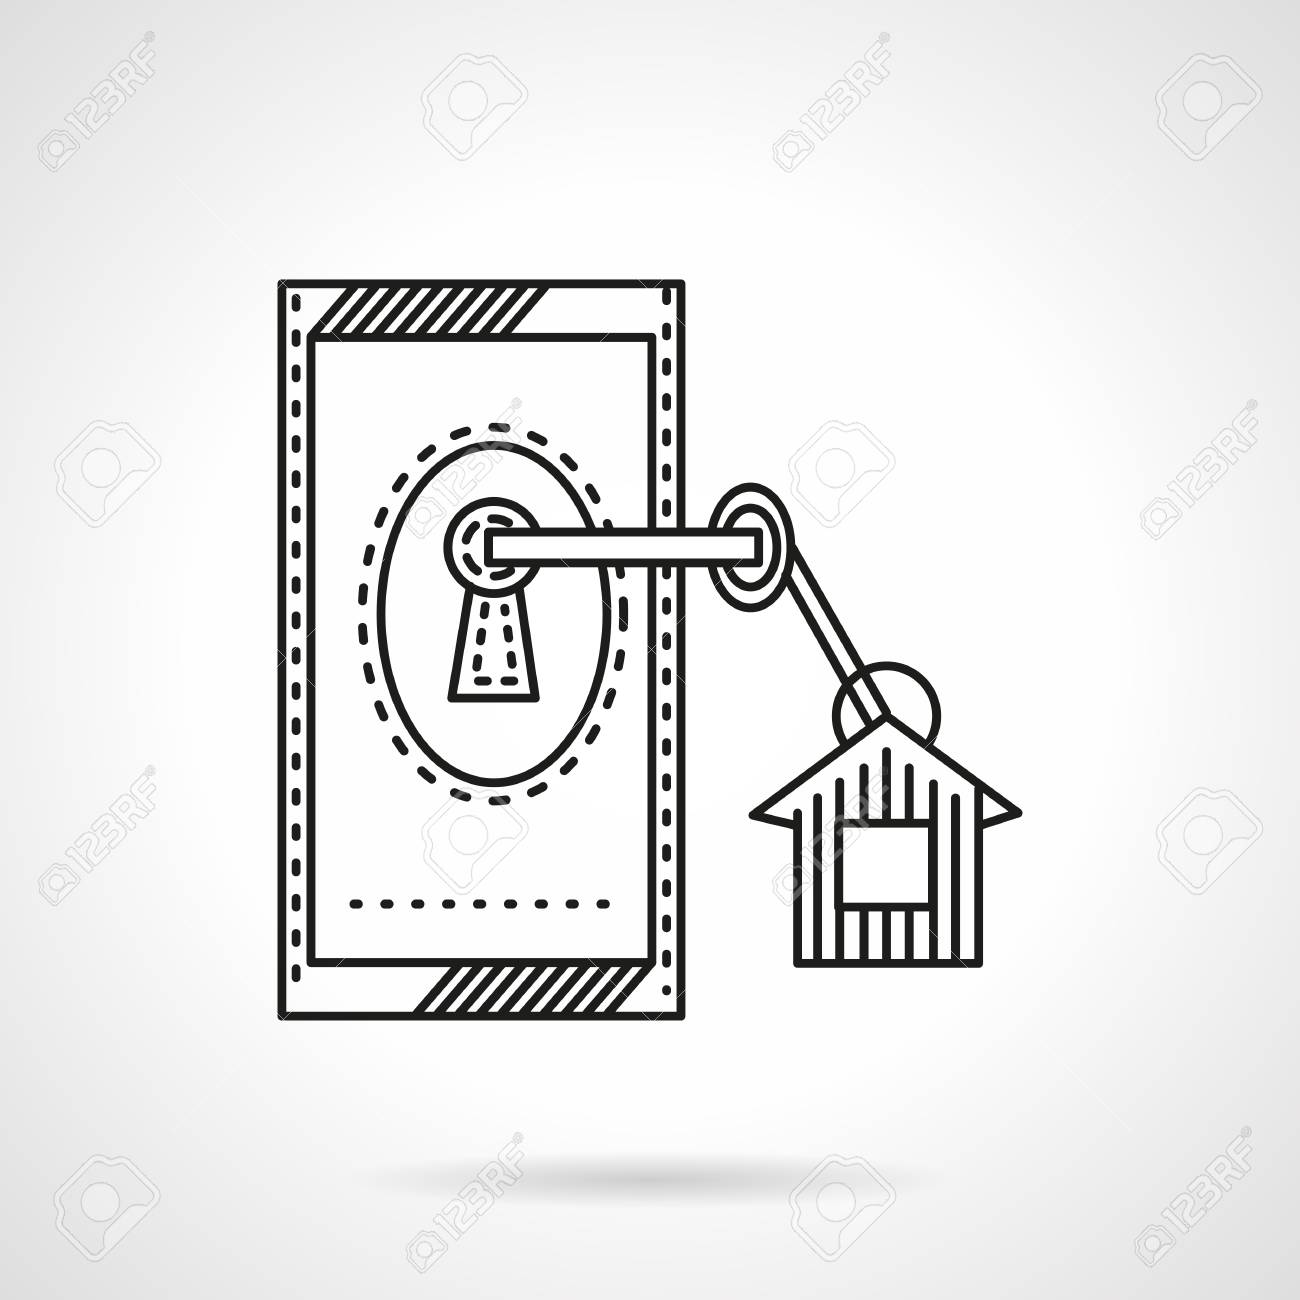 Doorlock With Key With Label Flat Line Vector Icon Symbol For